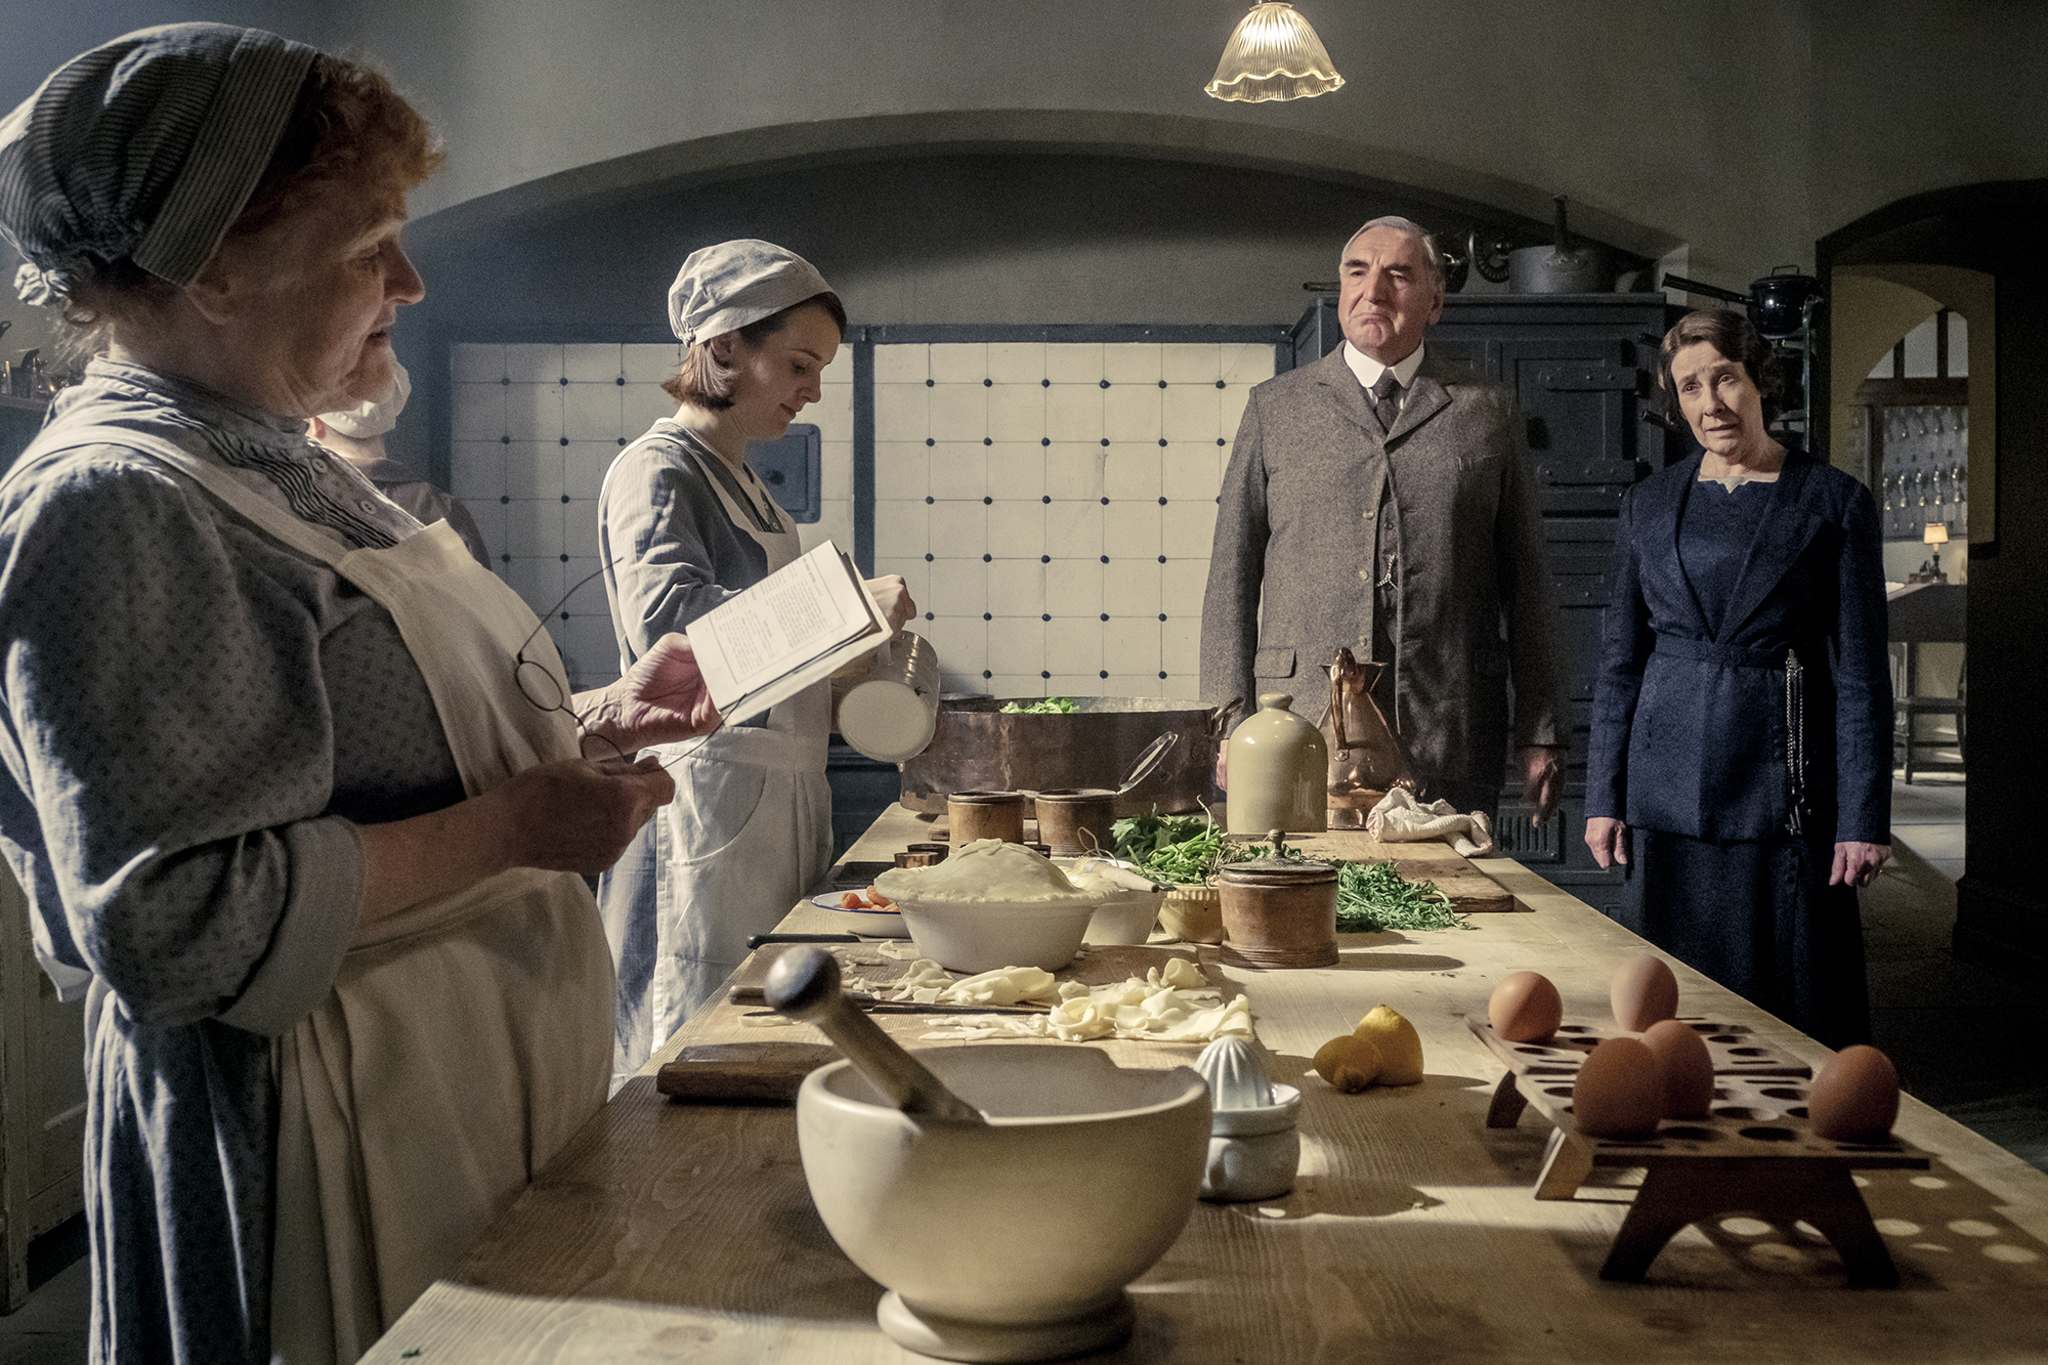 Lesley Nicol (from left), Sophie McShera, Jim Carter and Phyllis Logan all return in the Downton Abbey movie. (Jaap Buitendijk / Focus Features)